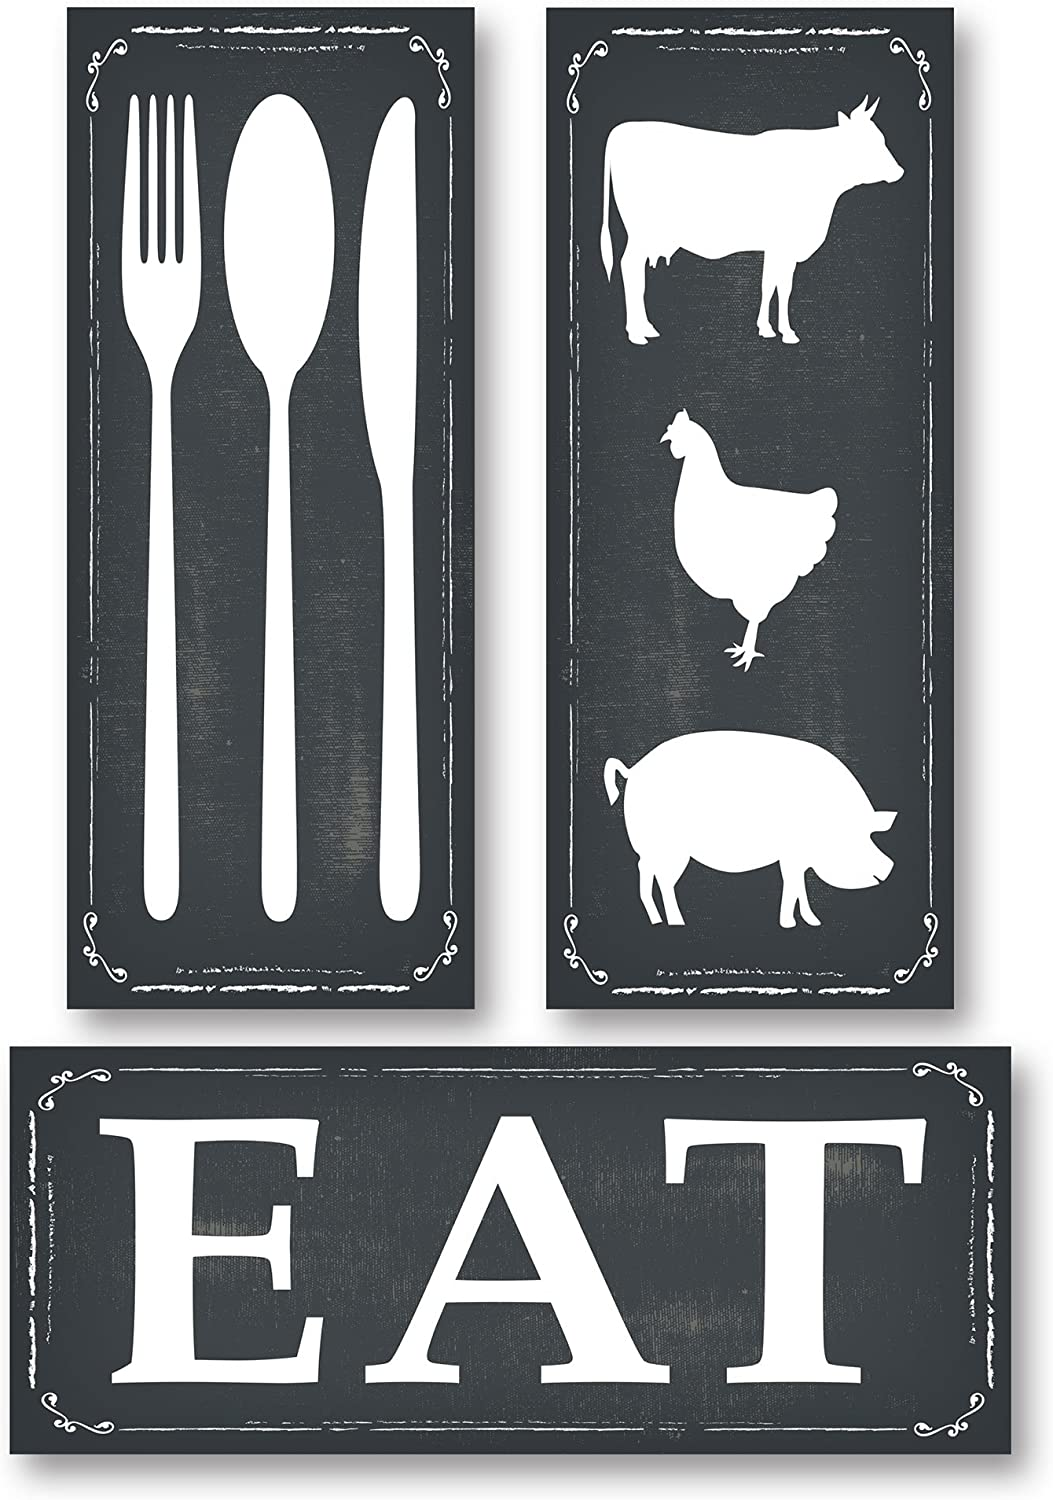 Chalkboard-Style Knife, Fork Spoon, Eat and Farm Animal Panel Prints (Printed On Paper); Three 8x20in Unframed Paper Posters